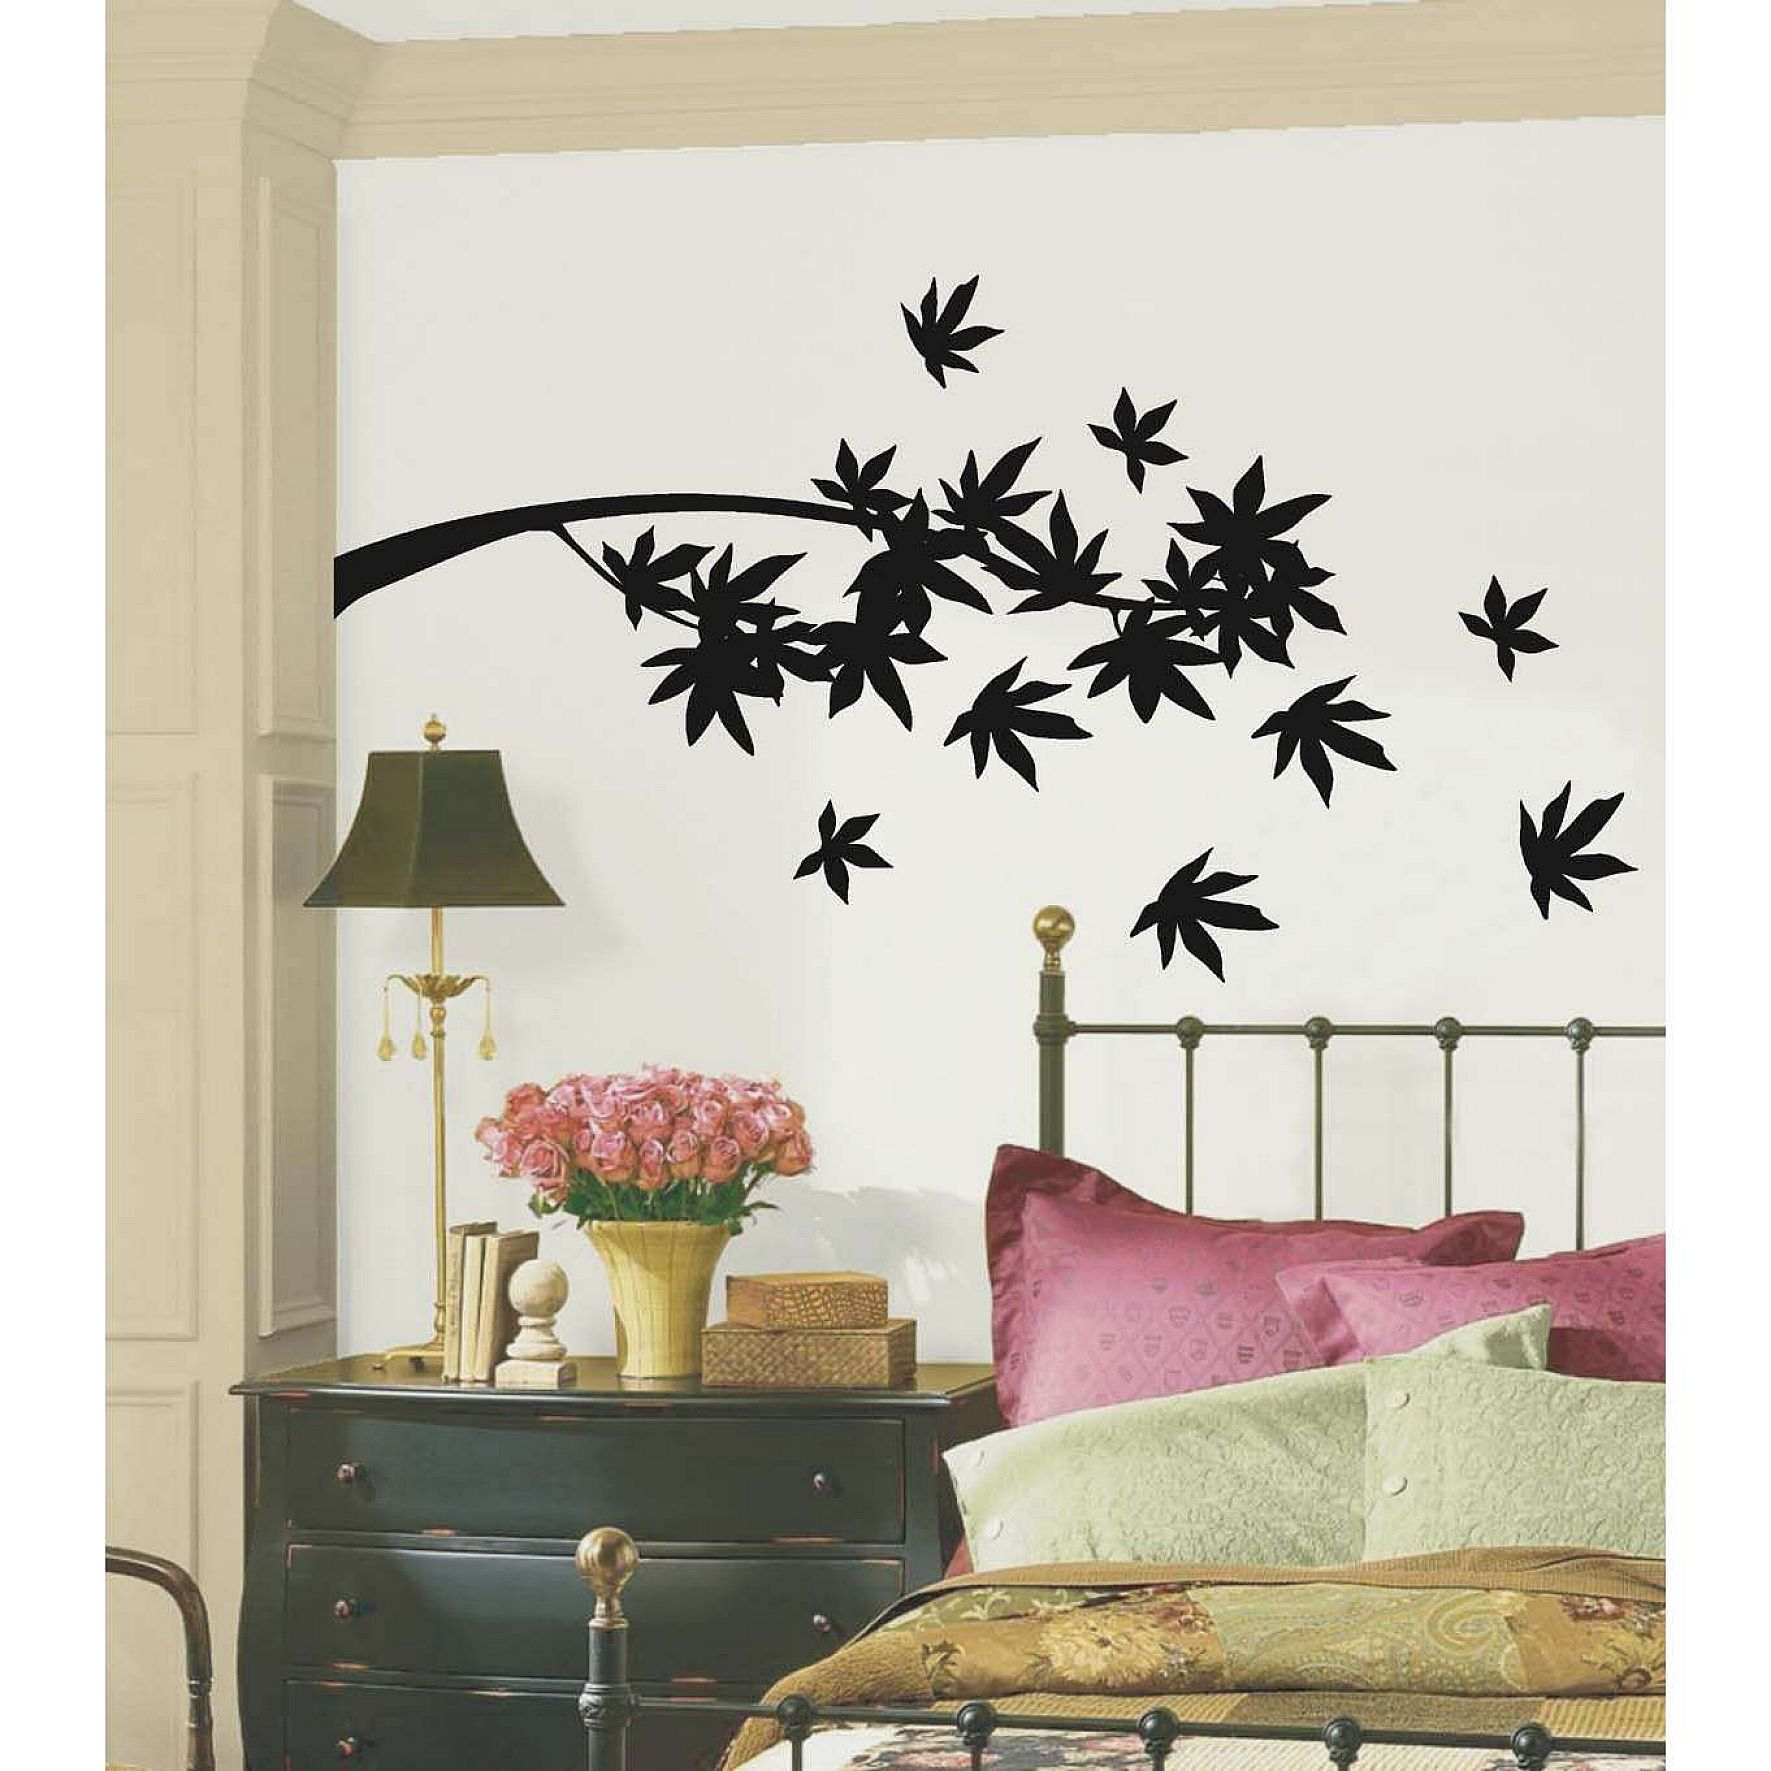 Design Of Bedroom Walls Amazing Designs For Walls 1 1